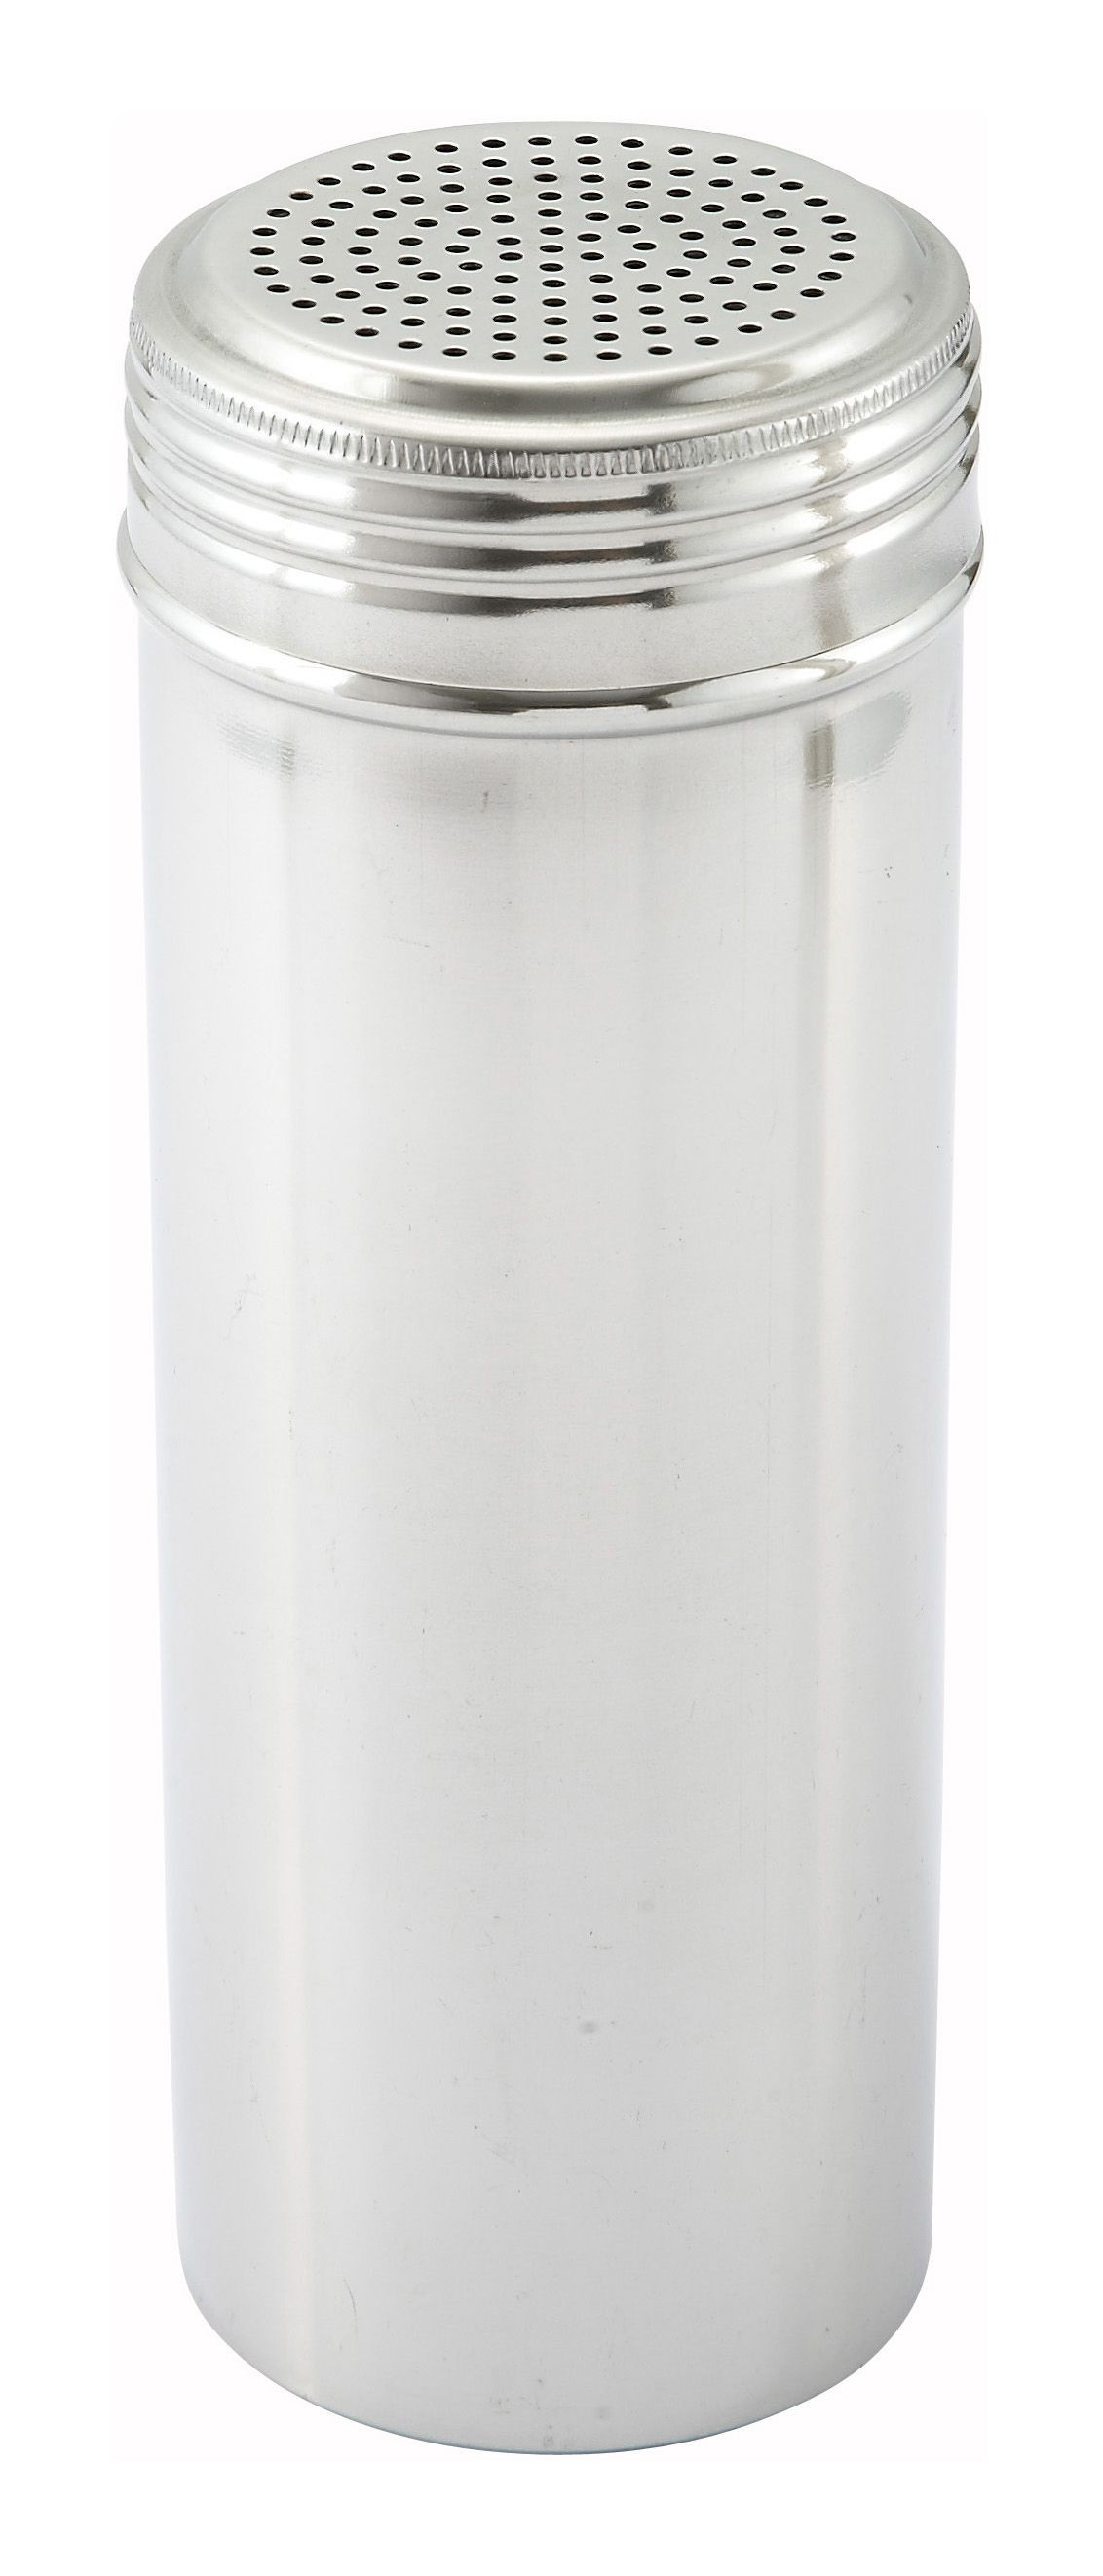 Winco DRG-22H Stainless Steel 22 oz. Dredge without Handle